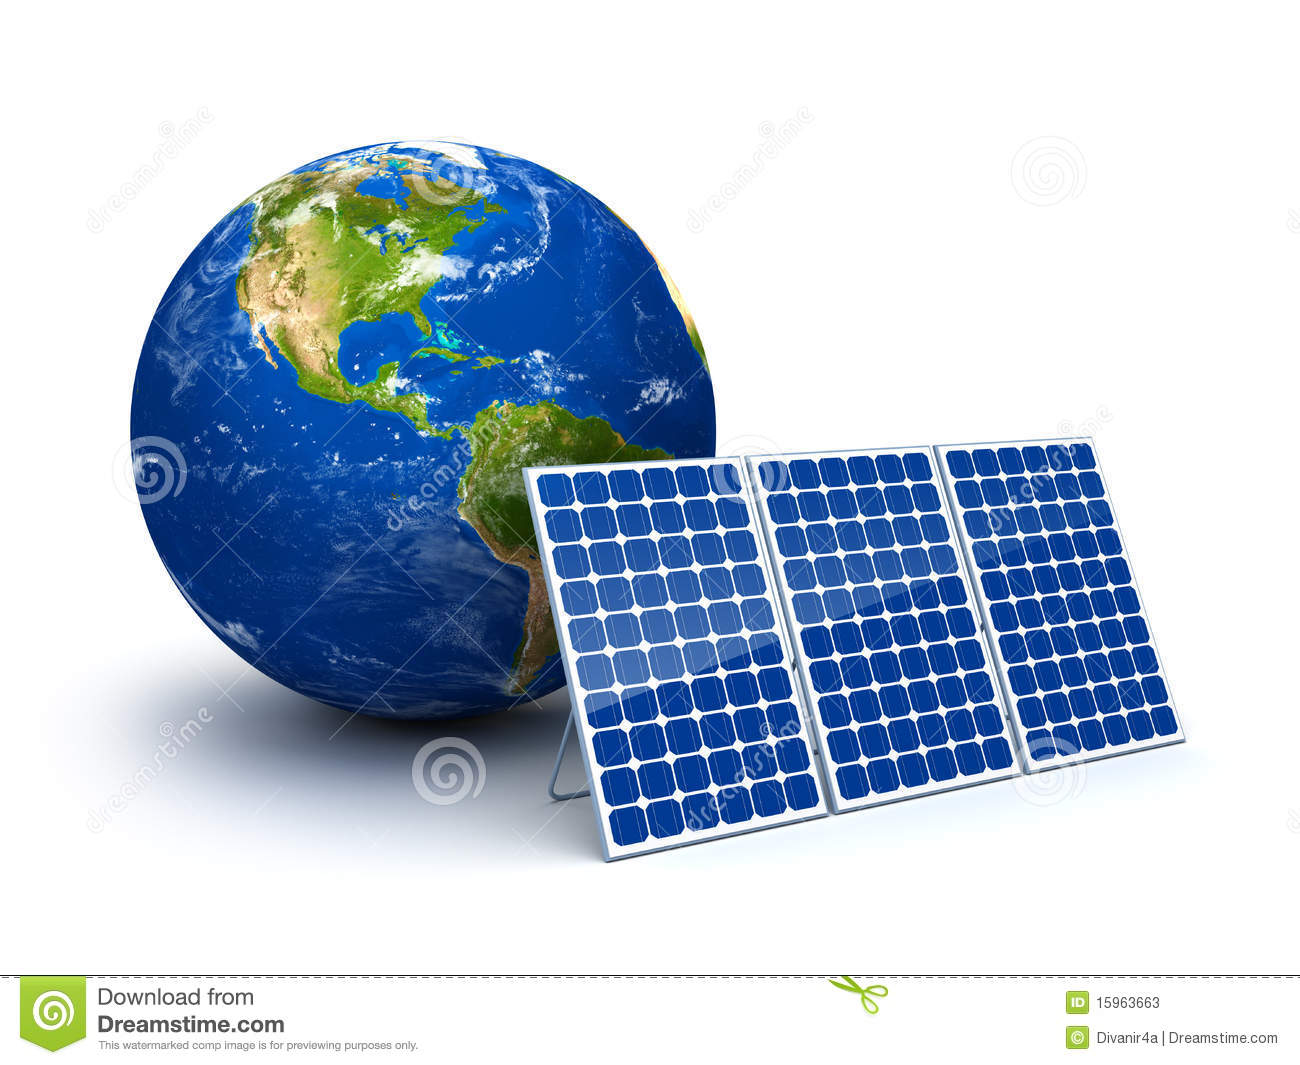 What is the cheapest new alternative energy?